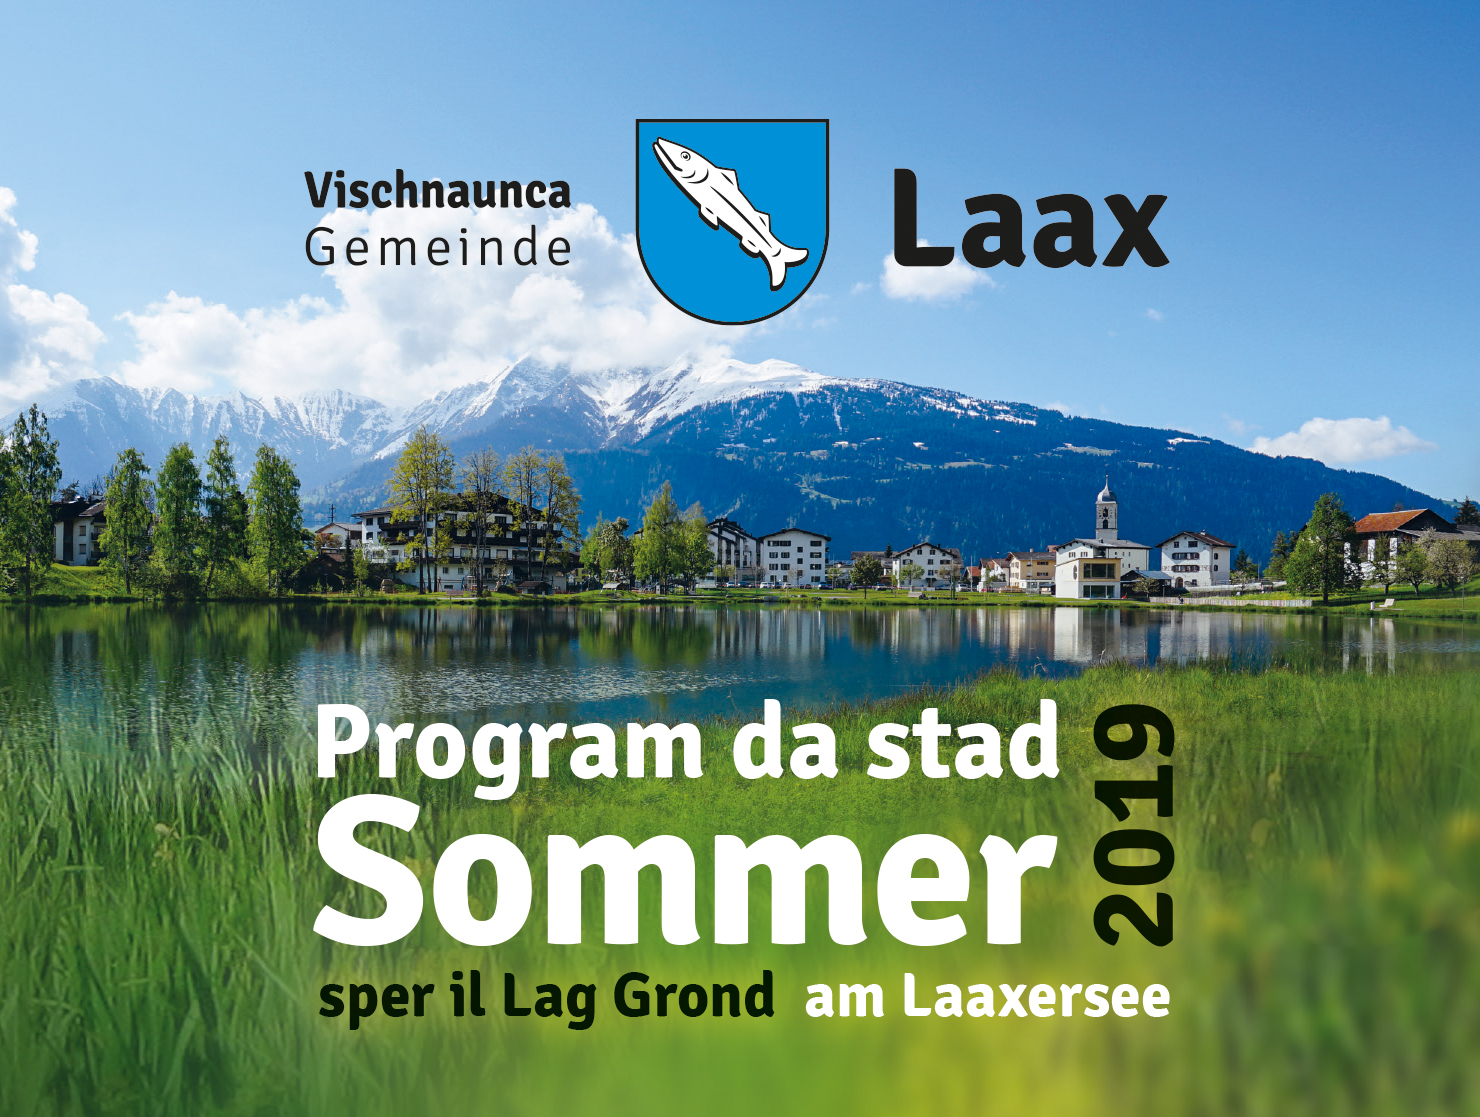 Summer programme at lake Laax